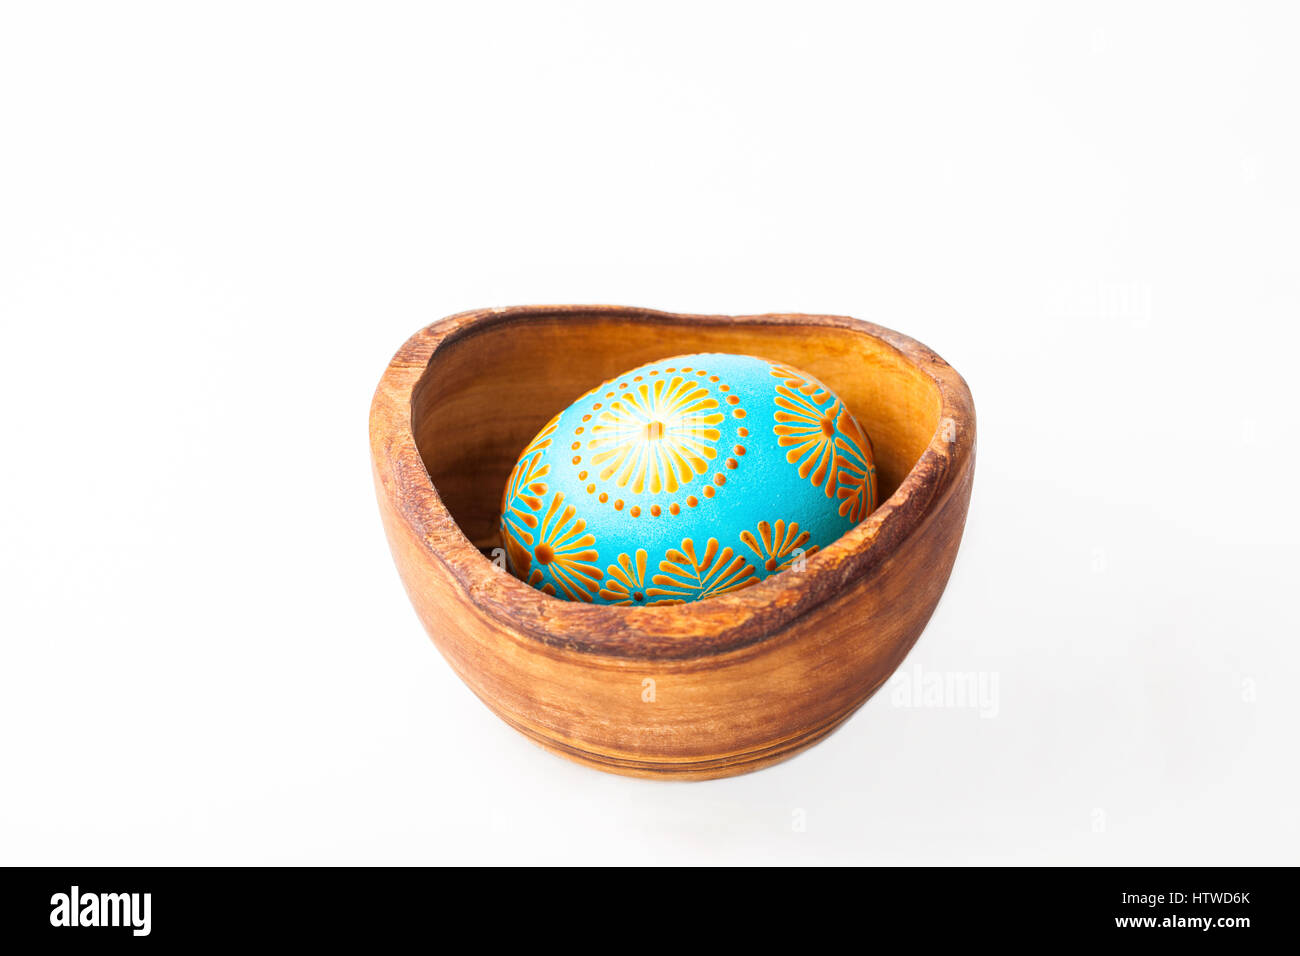 Easter egg, Paschal egg decorated with beeswax - to celebrate Easter. Its old tradition in Lithuania, Eastern Europe. - Stock Image